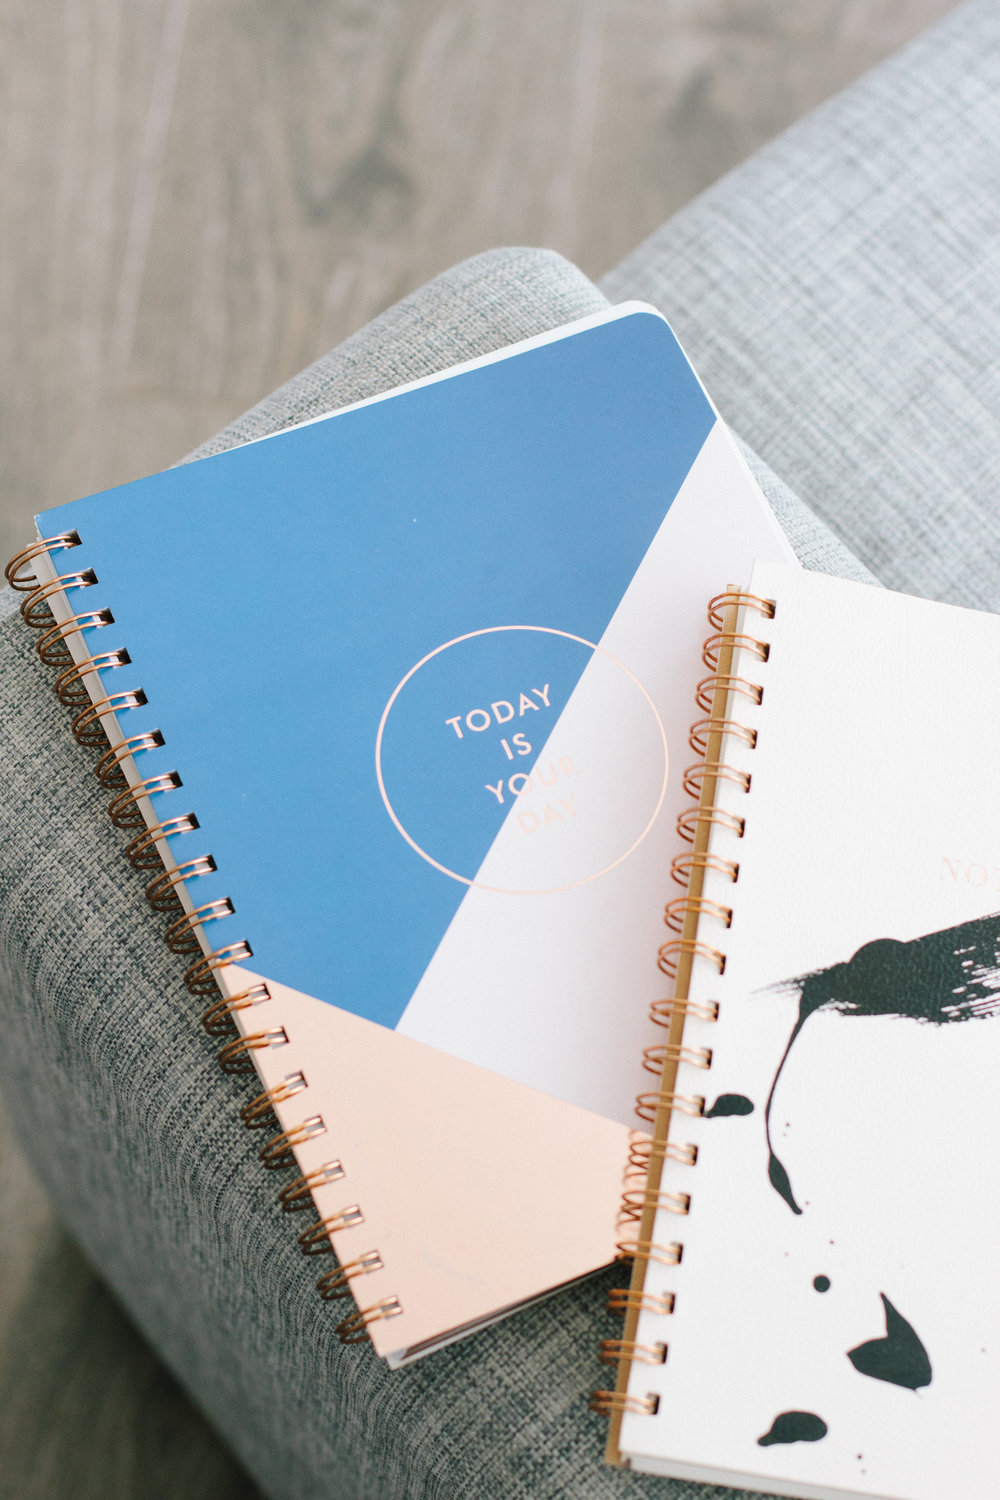 Big and small notebooks we use for staying organized as small business owners